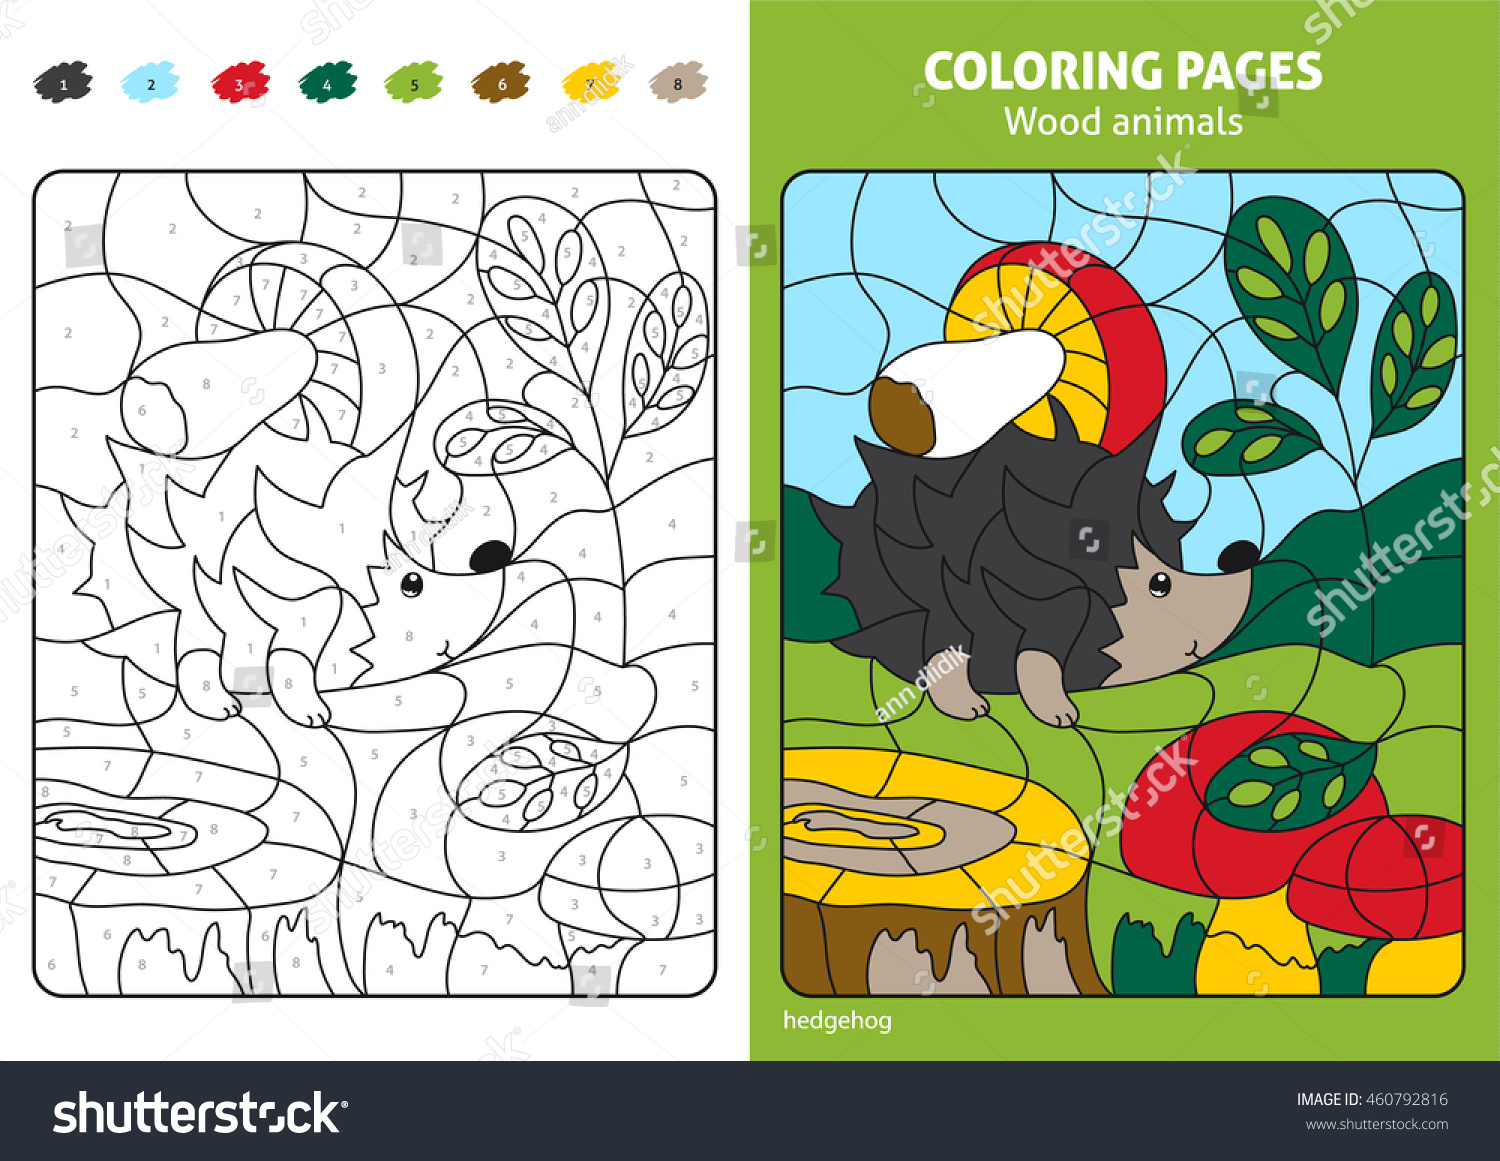 Wood Animals Coloring Page Kids Hedgehog Stock Vector